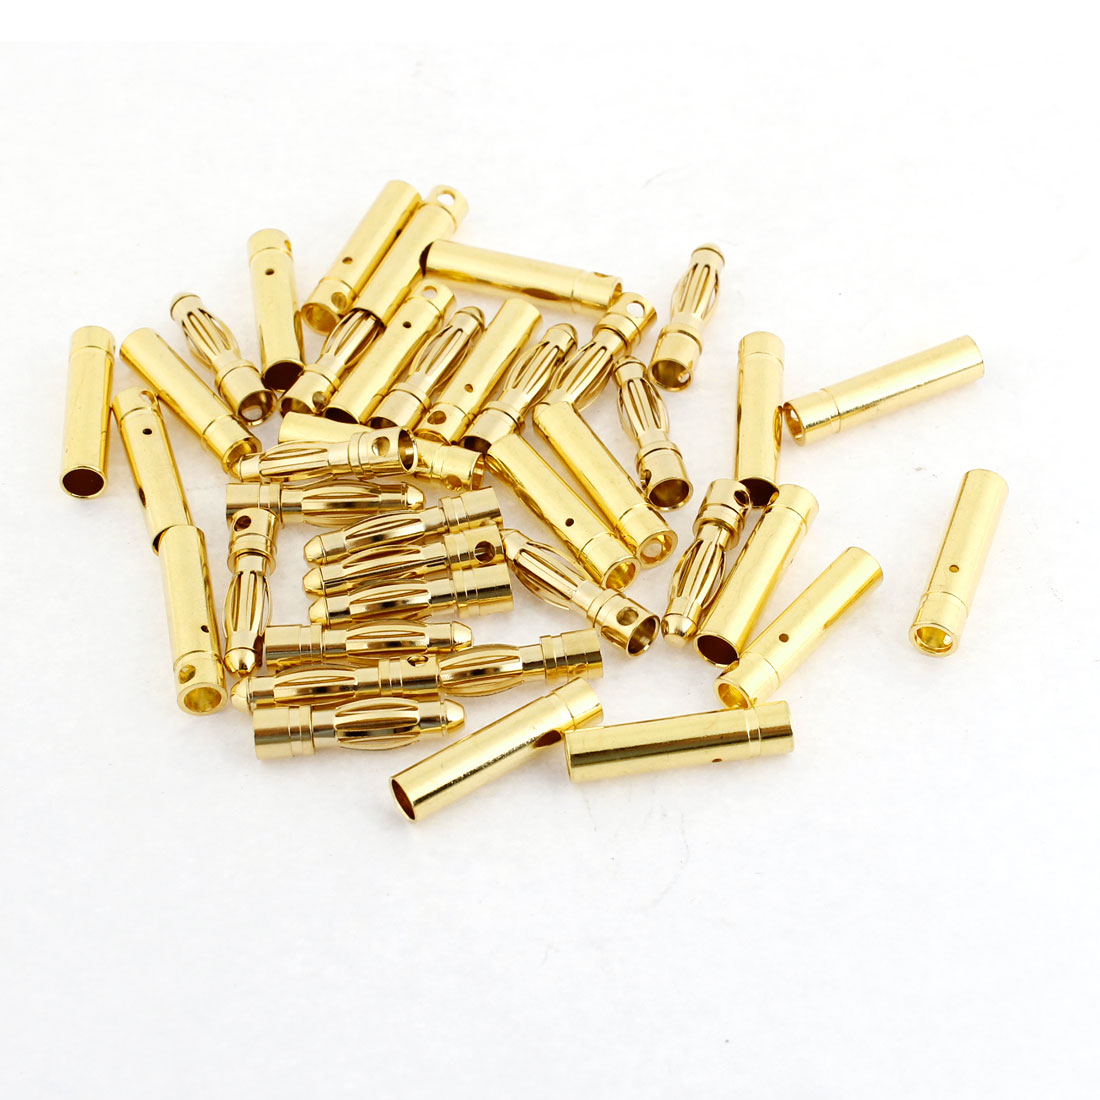 20 Pairs Gold Tone Metal RC Banana Plug Connector Male Female 4mm